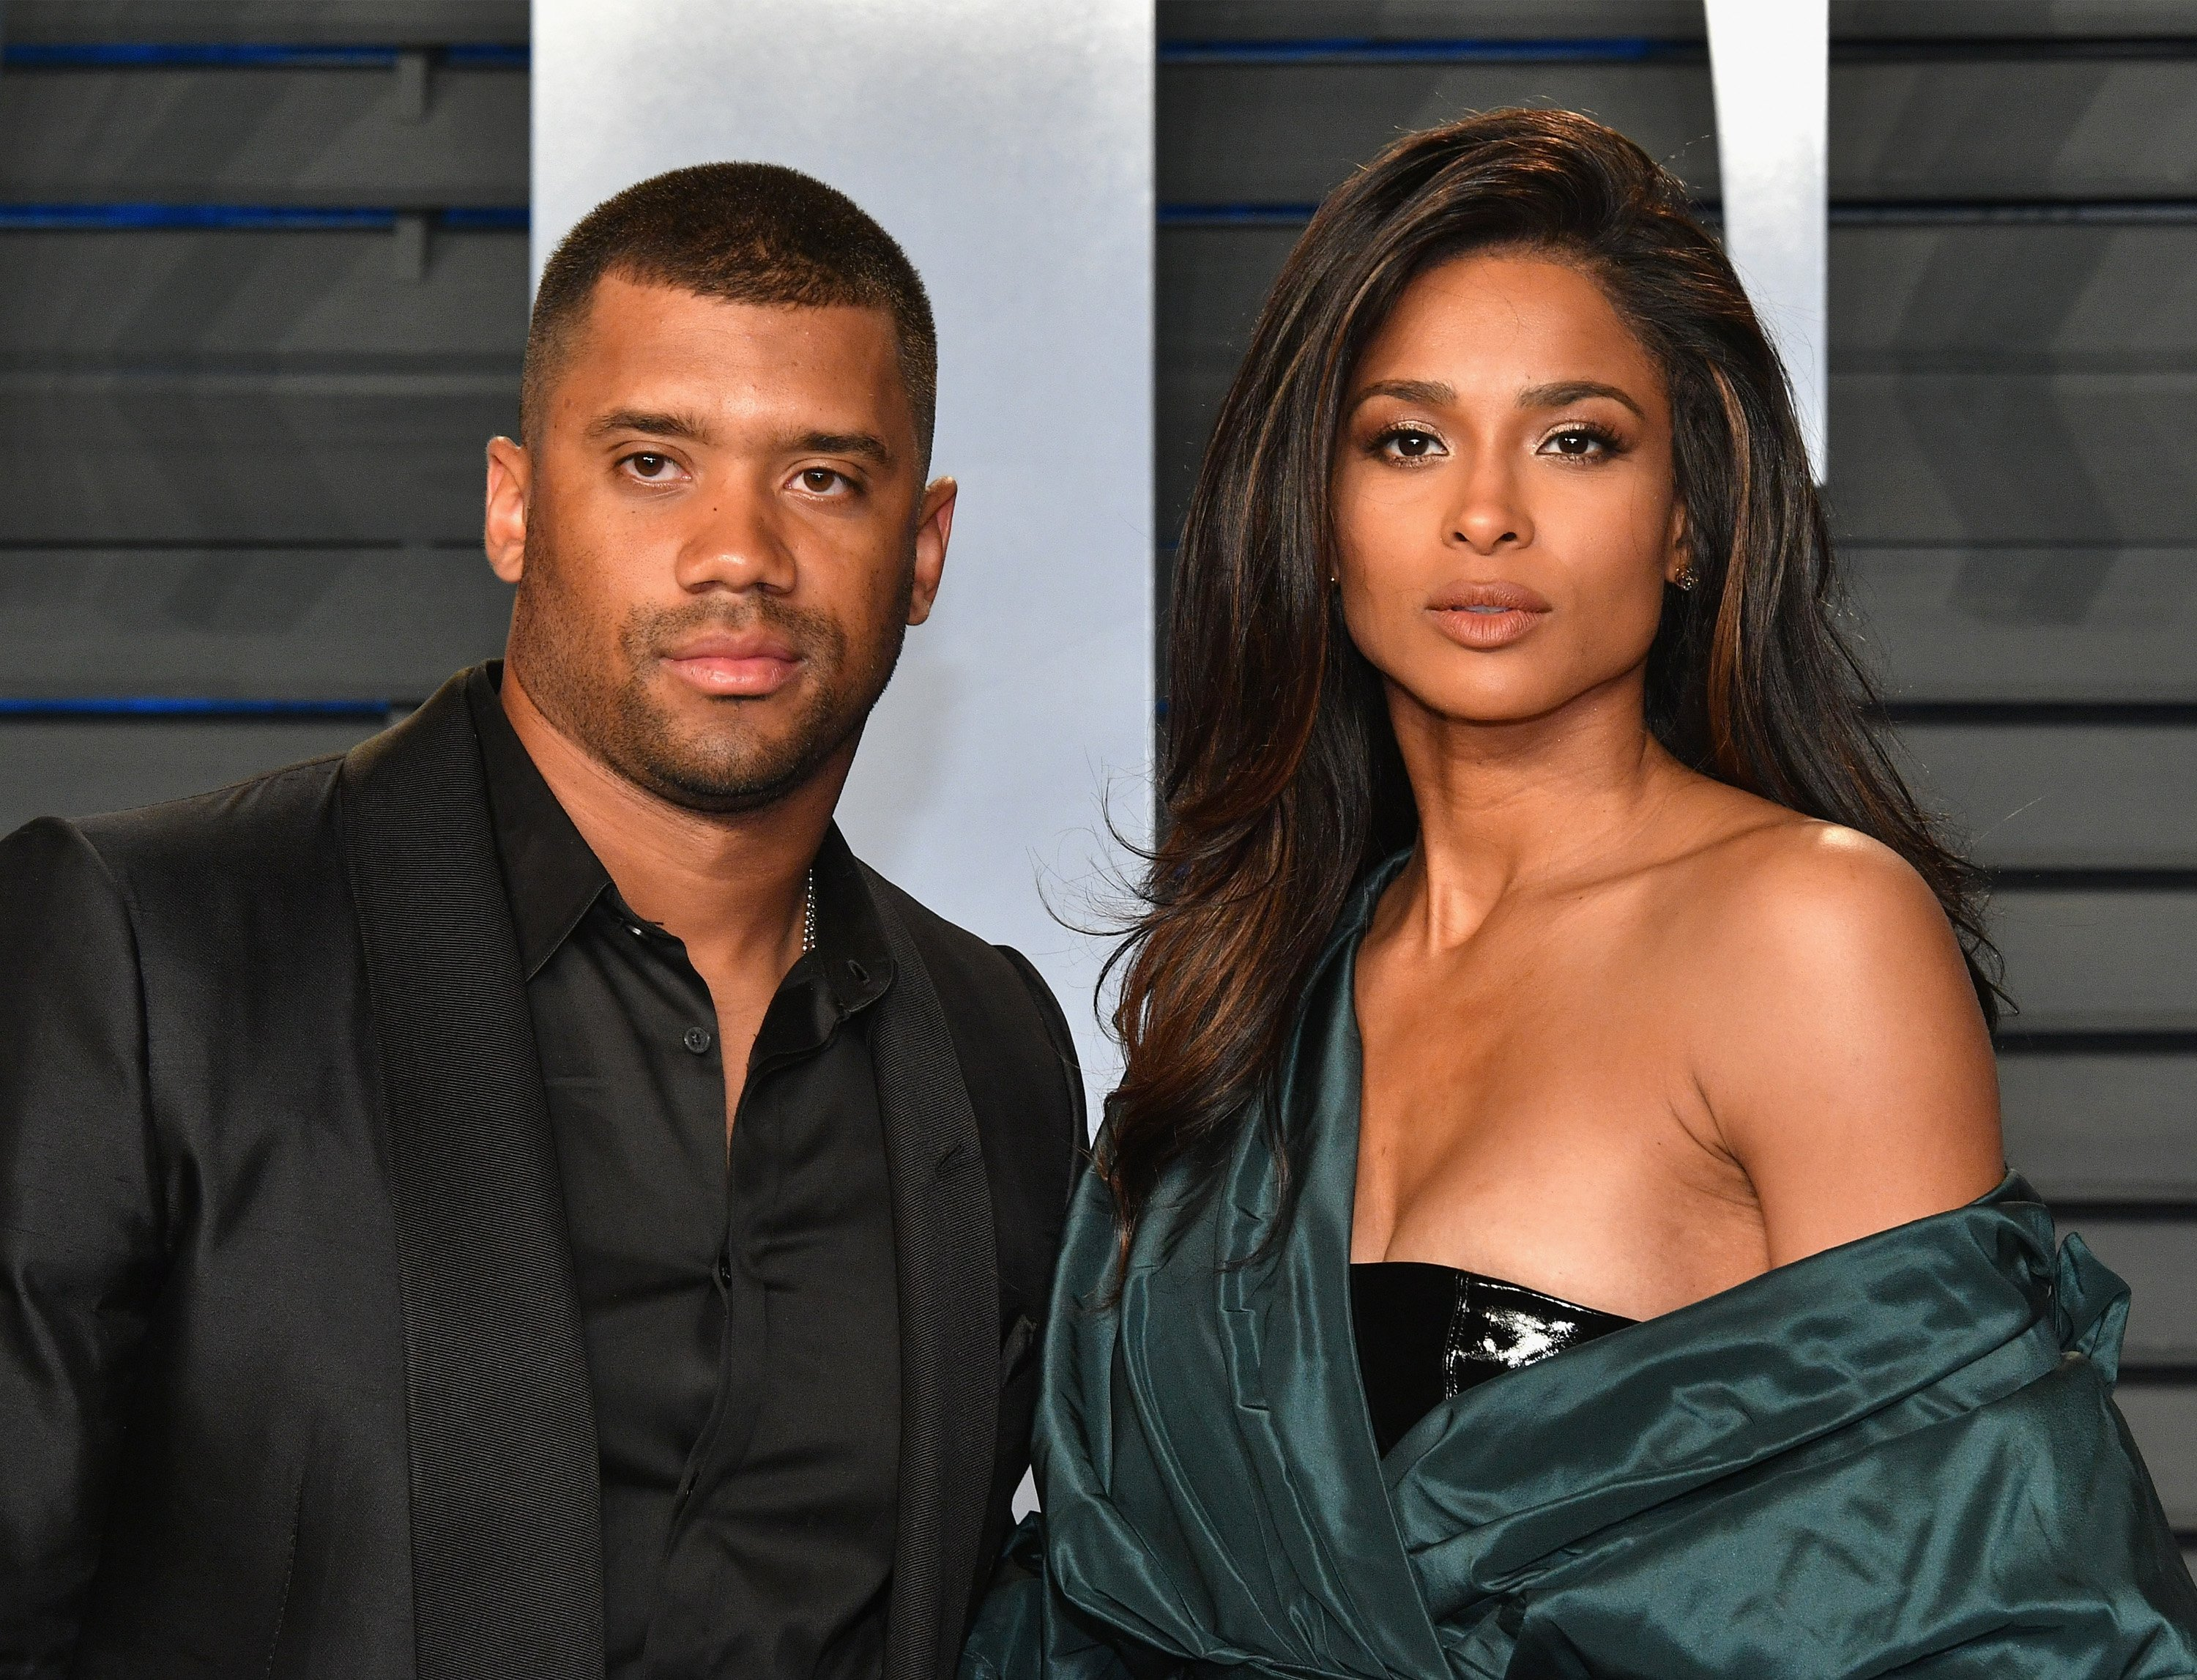 Russell Wilson & Ciara at a 2018 Vanity Fair Oscar Party on Mar. 4, 2018 in Beverly Hills. |Photo: Getty Images